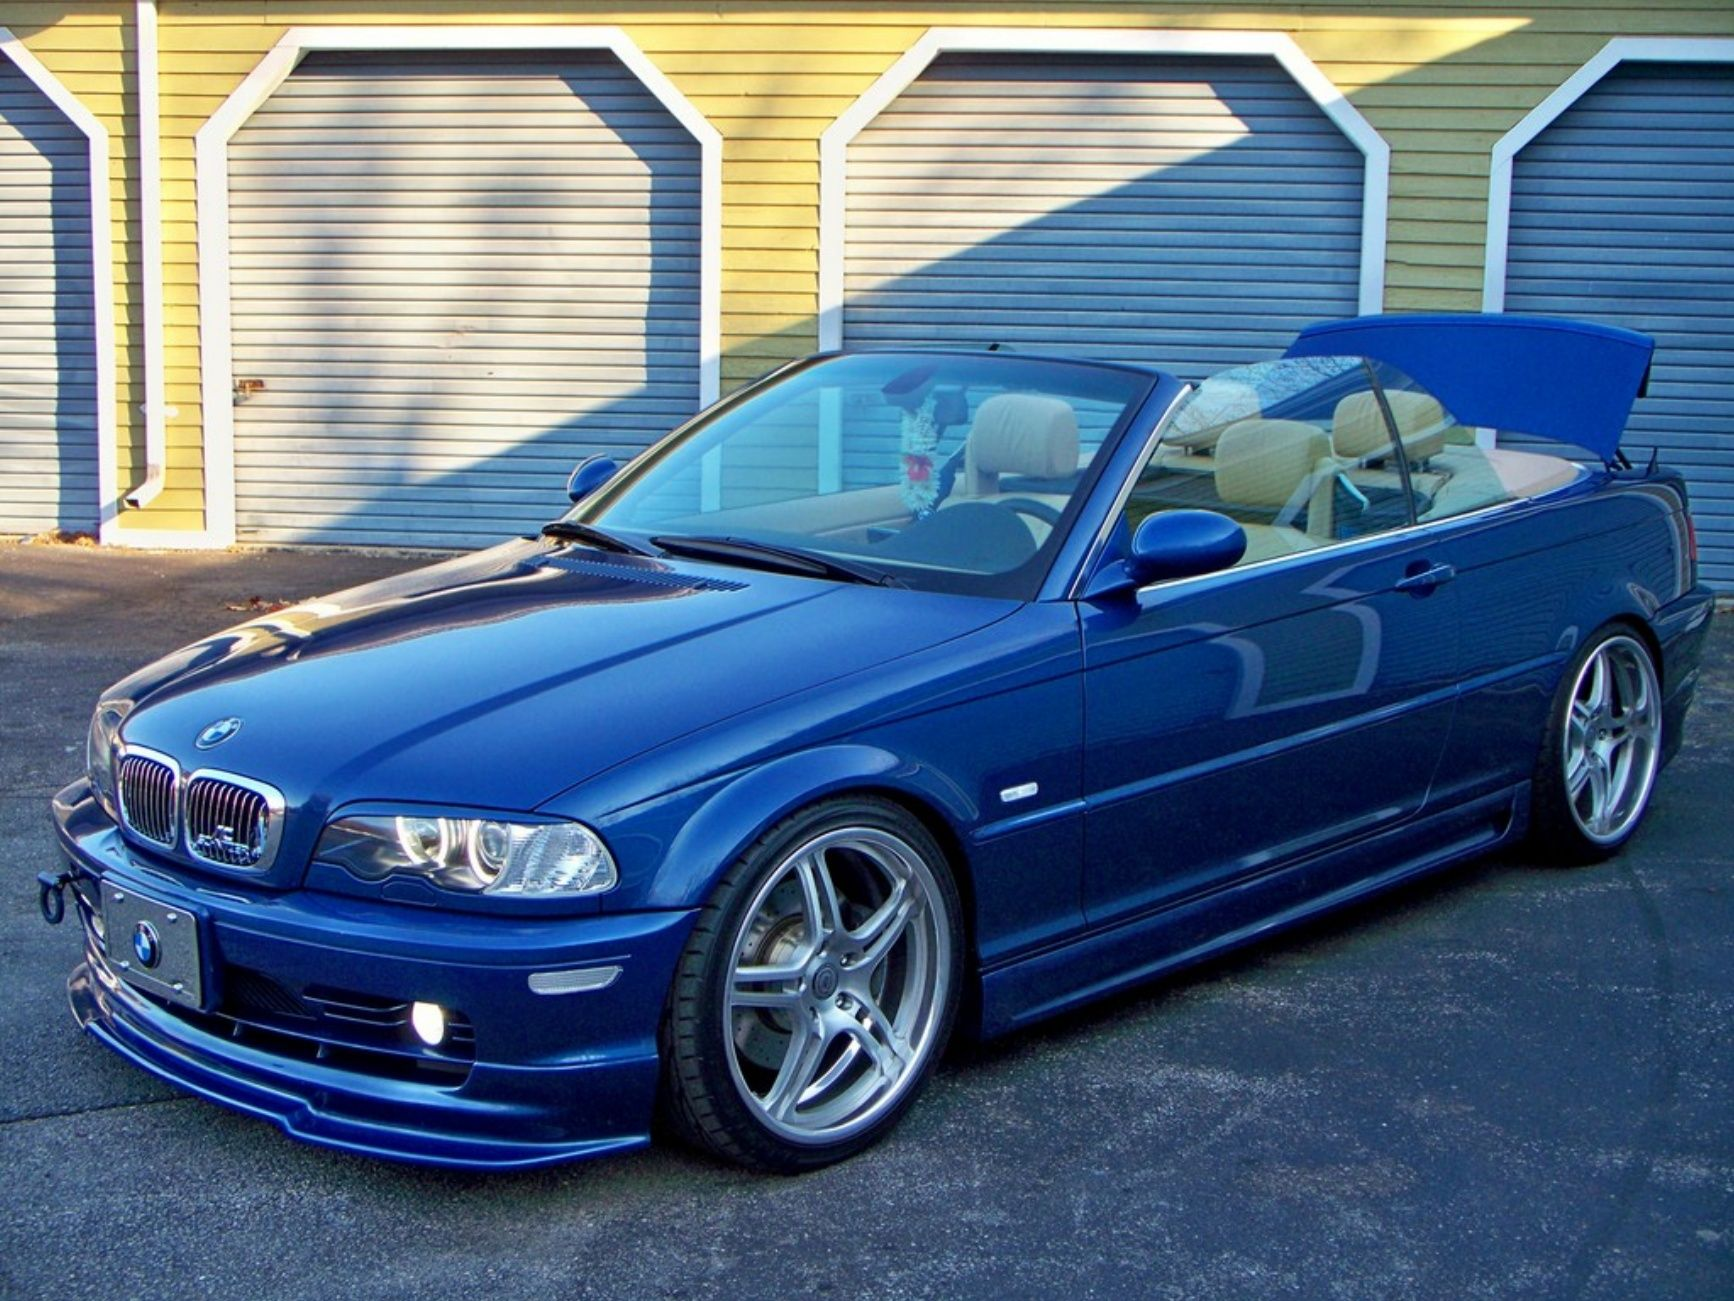 Pin By Fabian Kohn On Bmw With Images Bmw Convertible Bmw 3